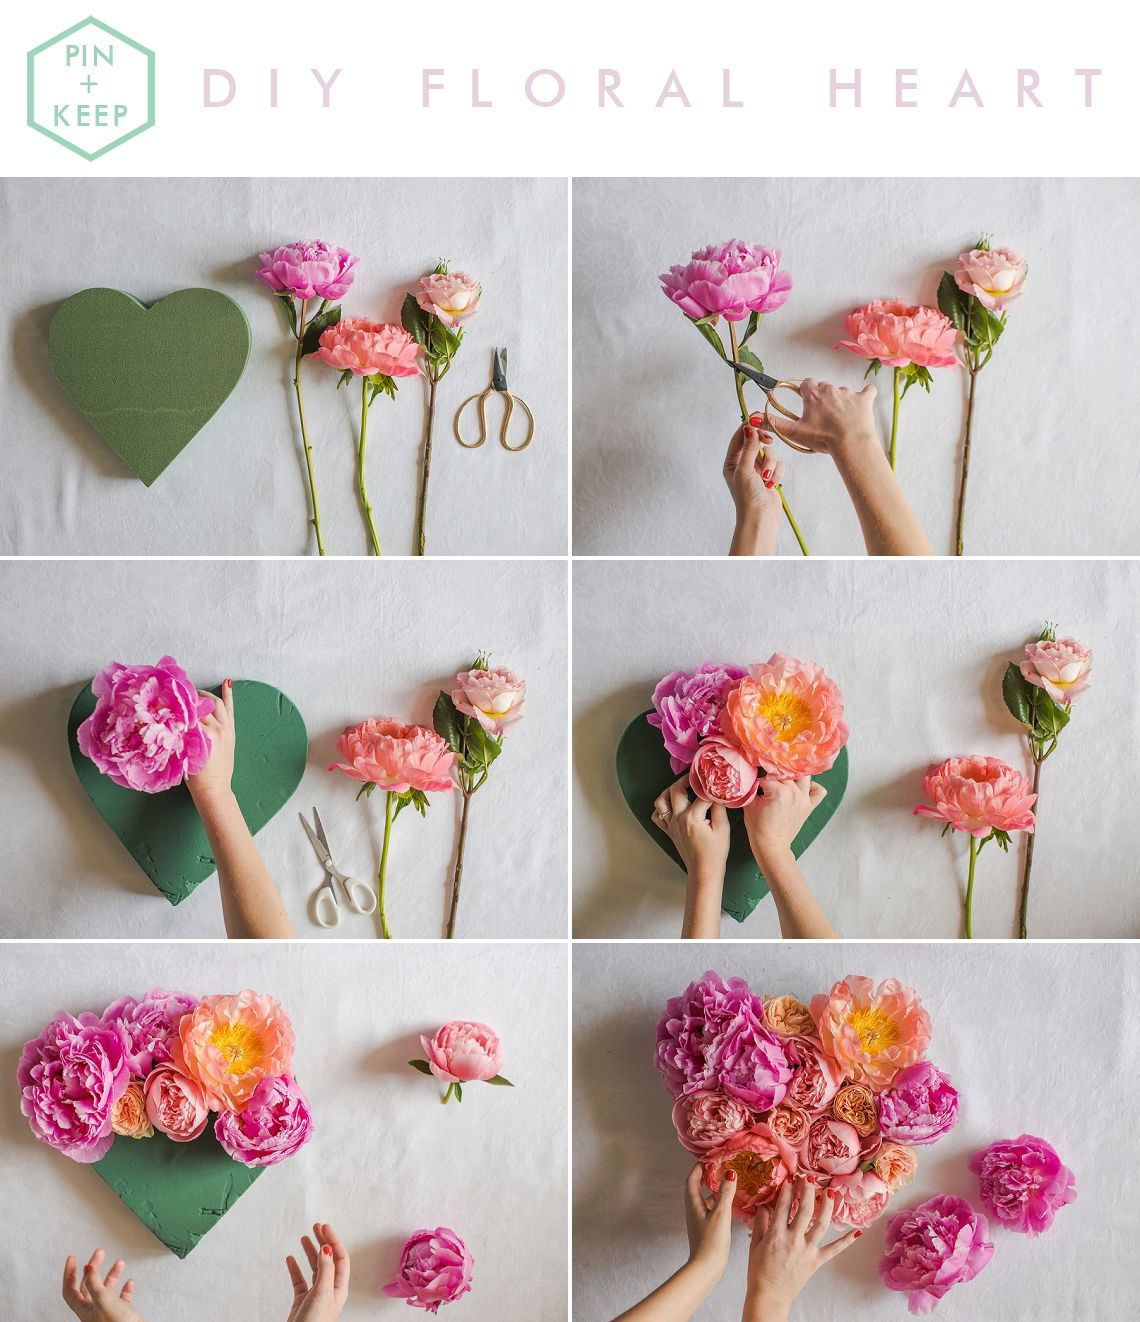 Fresh Floral Heart DIY Tutorial | Peony, Tutorials and Floral